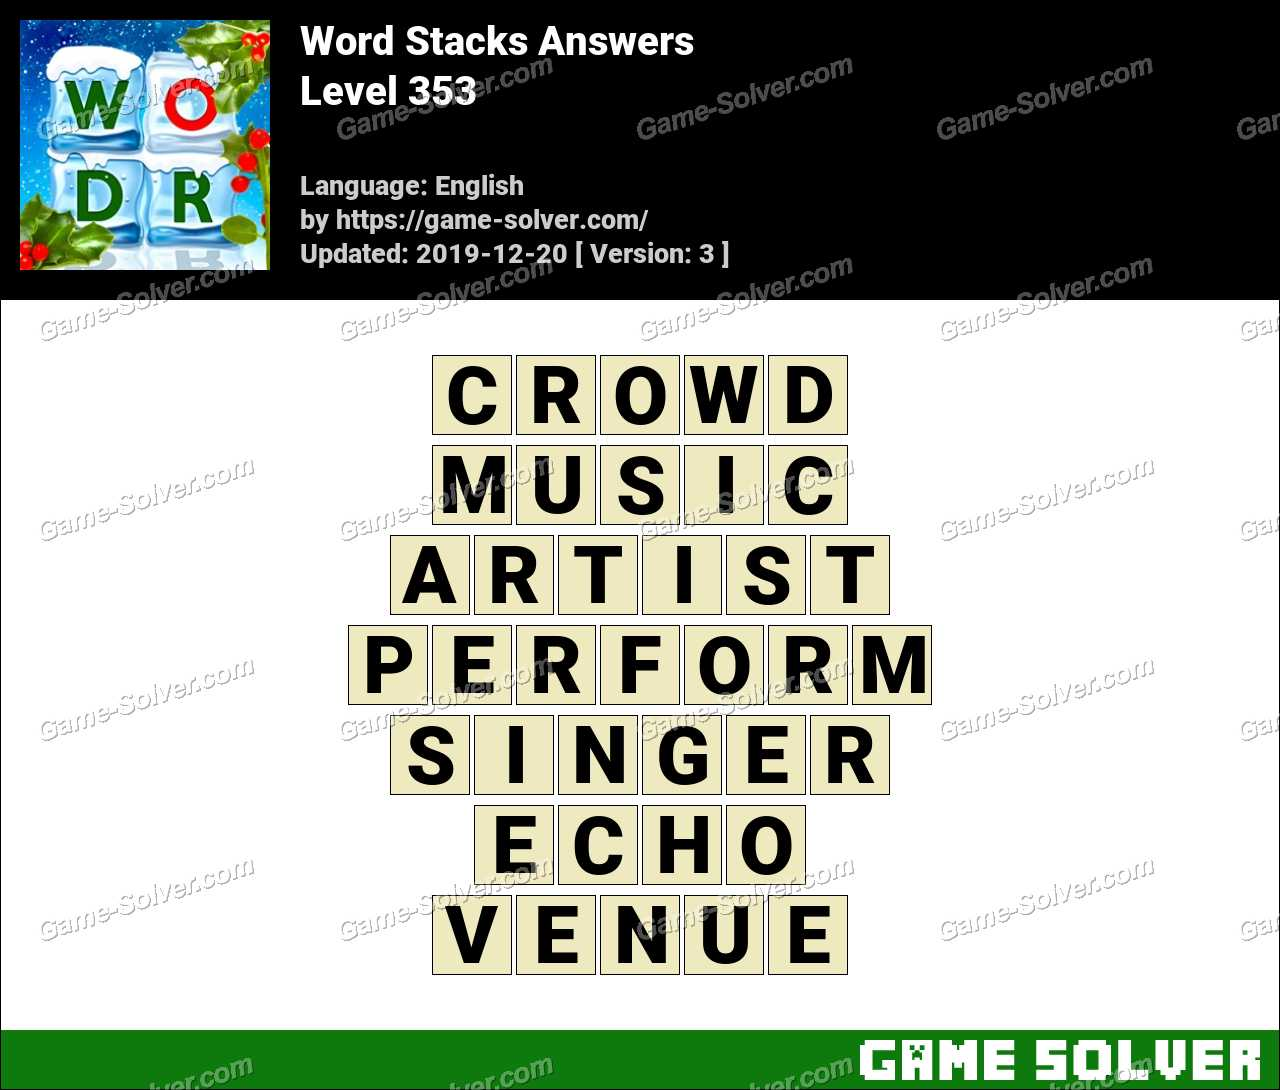 Word Stacks Level 353 Answers